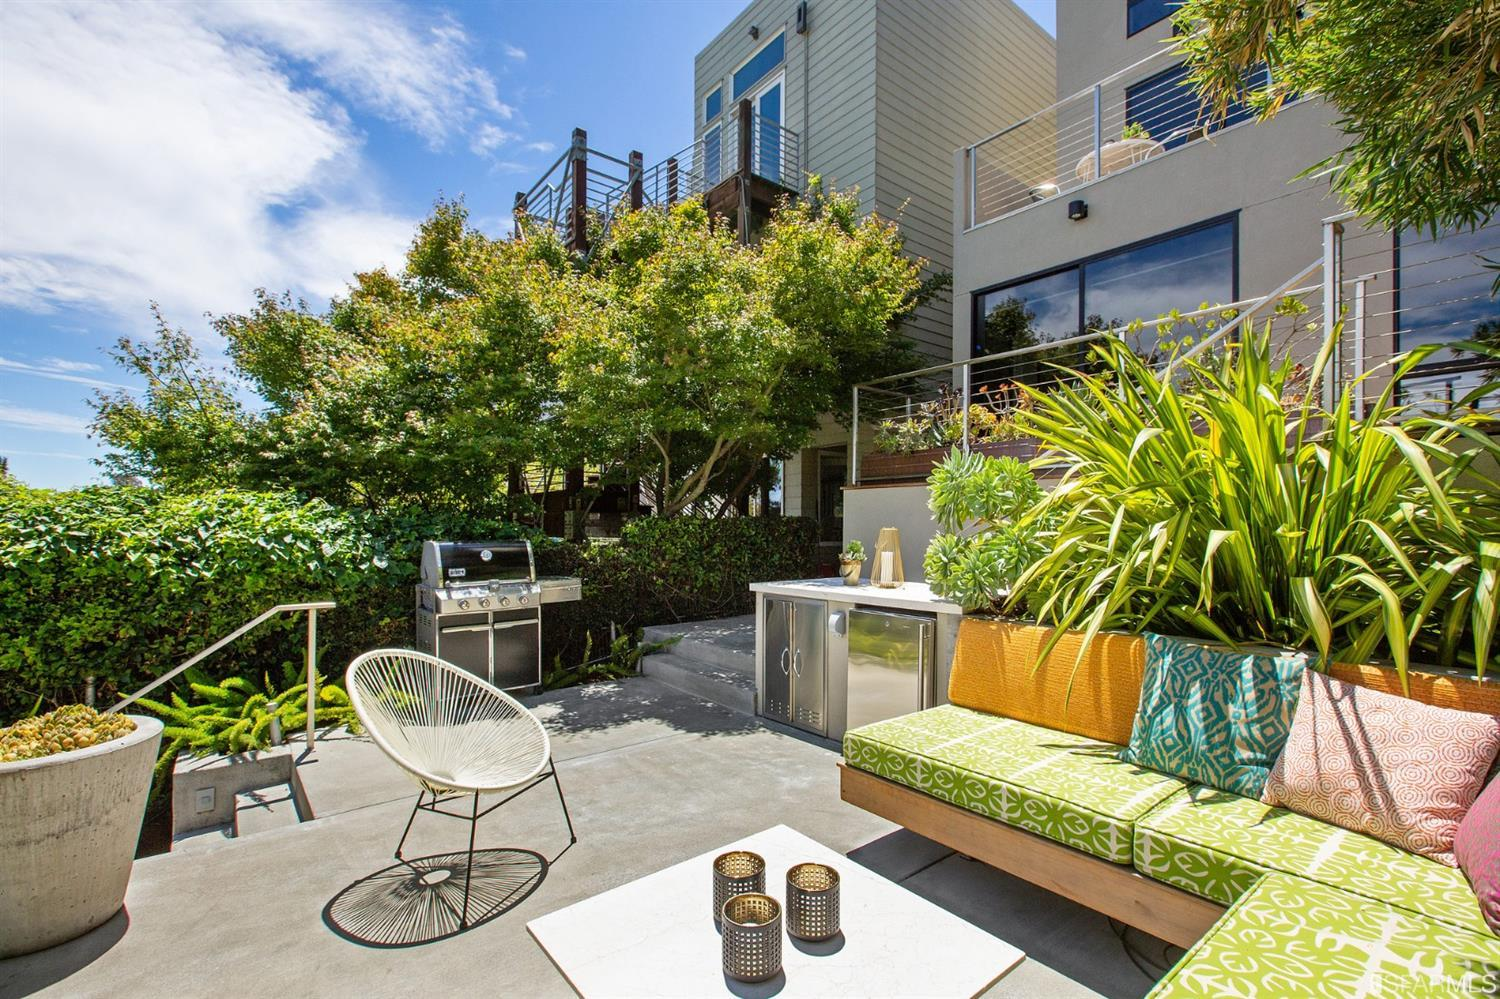 Walk-out decks from the main and lower levels overlook a fabulous southeast facing landscaped yard with built-in seating, lush p